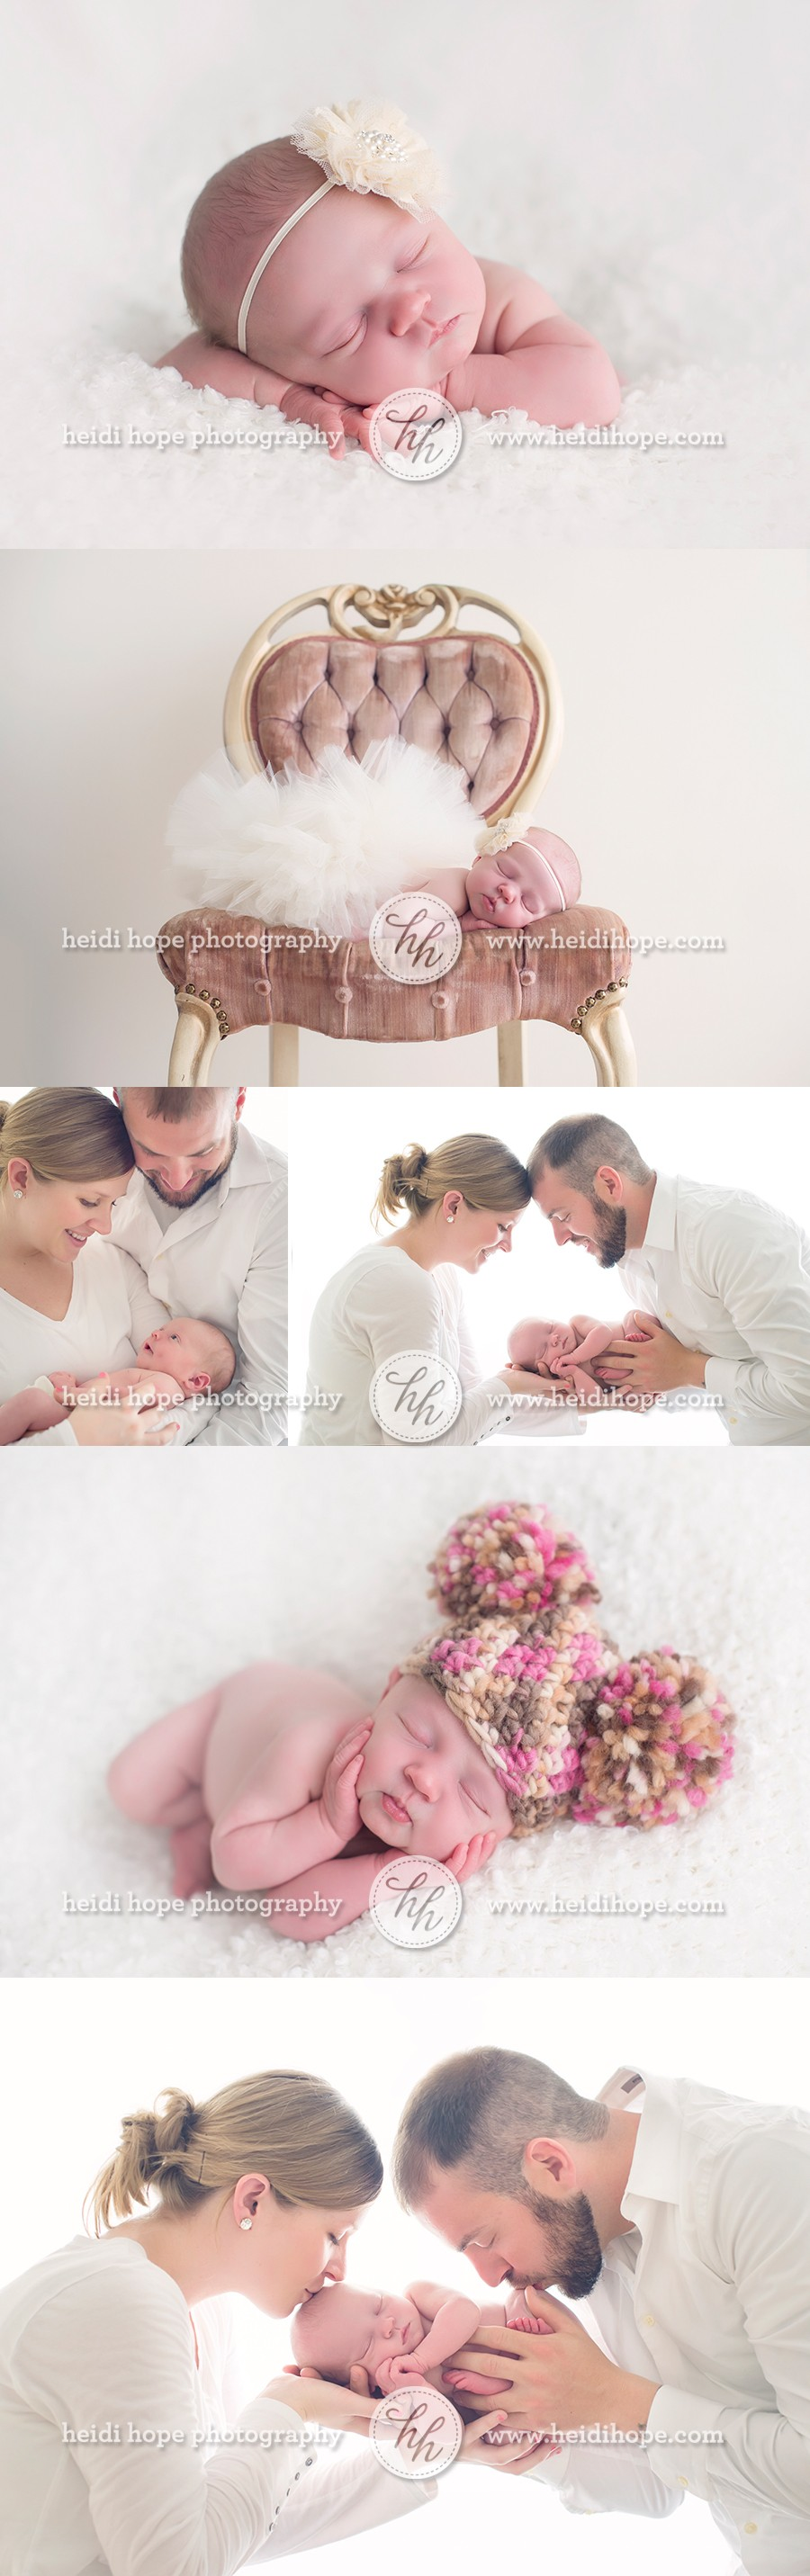 simple_lifestyle_newborn_baby_girl_portraits_with_parentsp